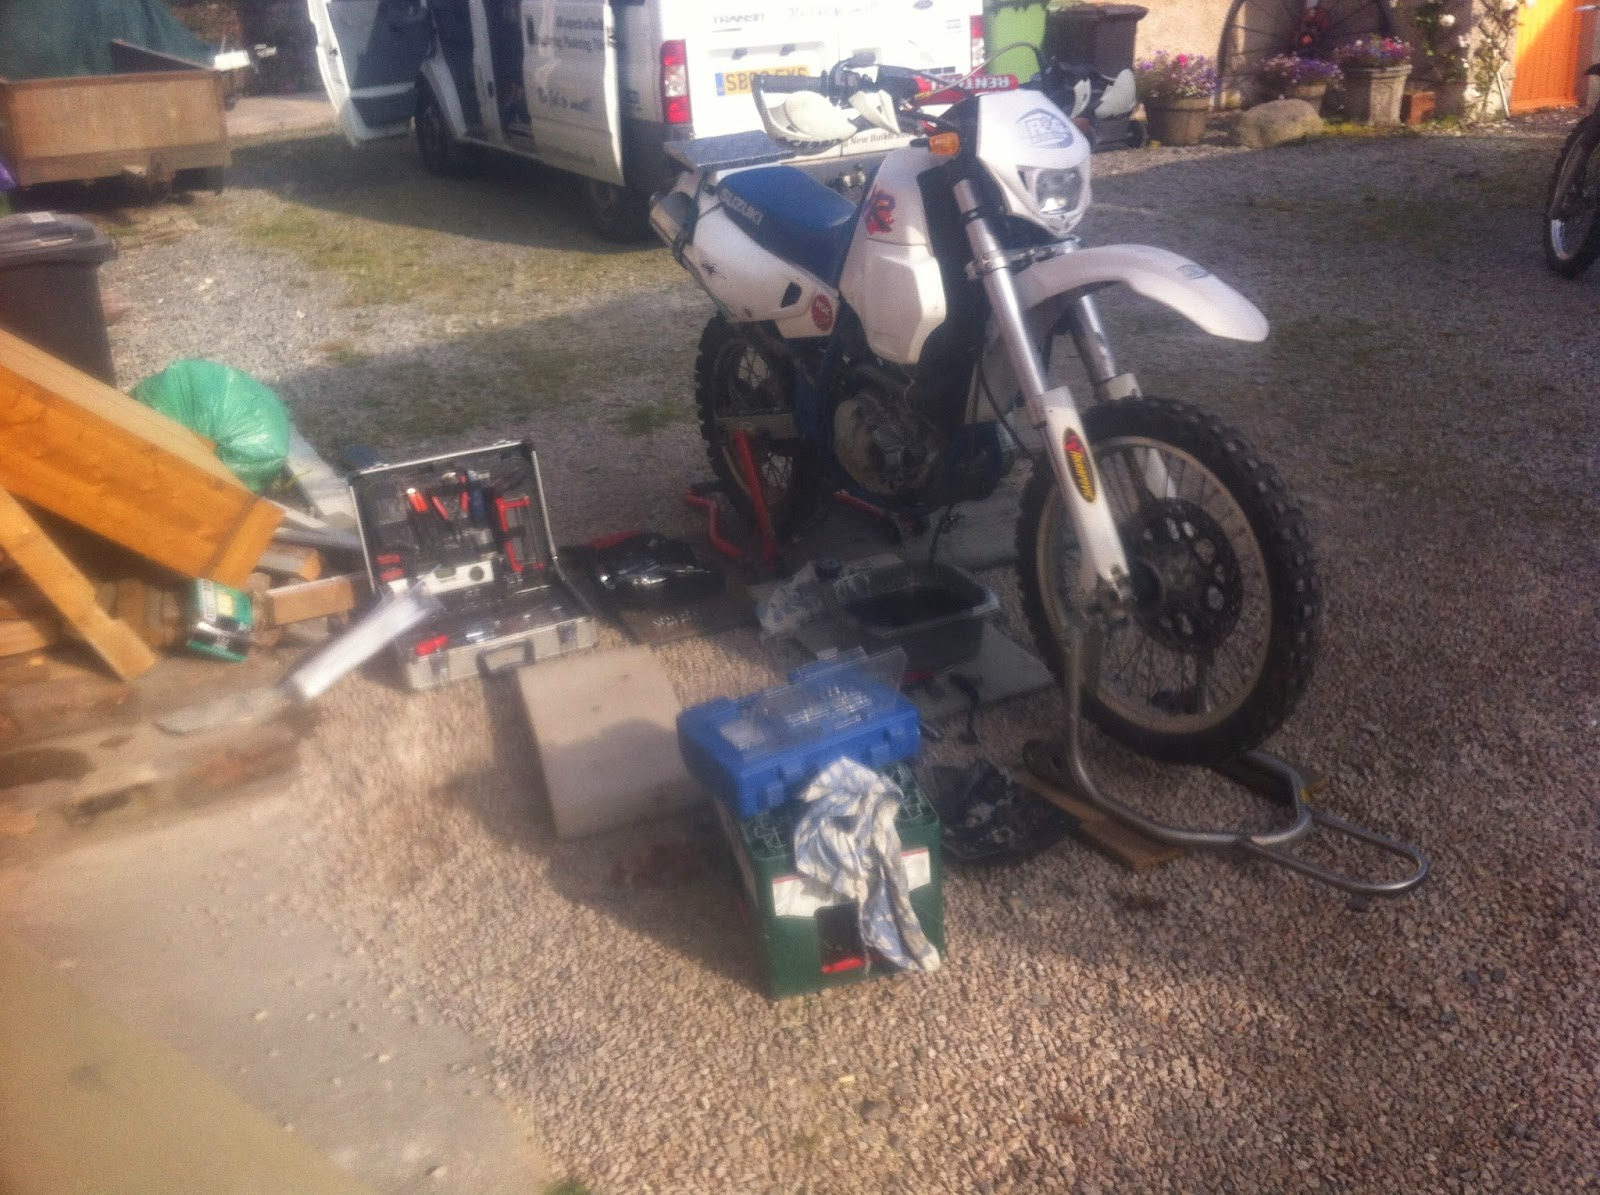 So armed with a laptop that had the workshop manual on it, plenty of tools,  the replacement clutch kit & some determination, off he set to change out  the ...